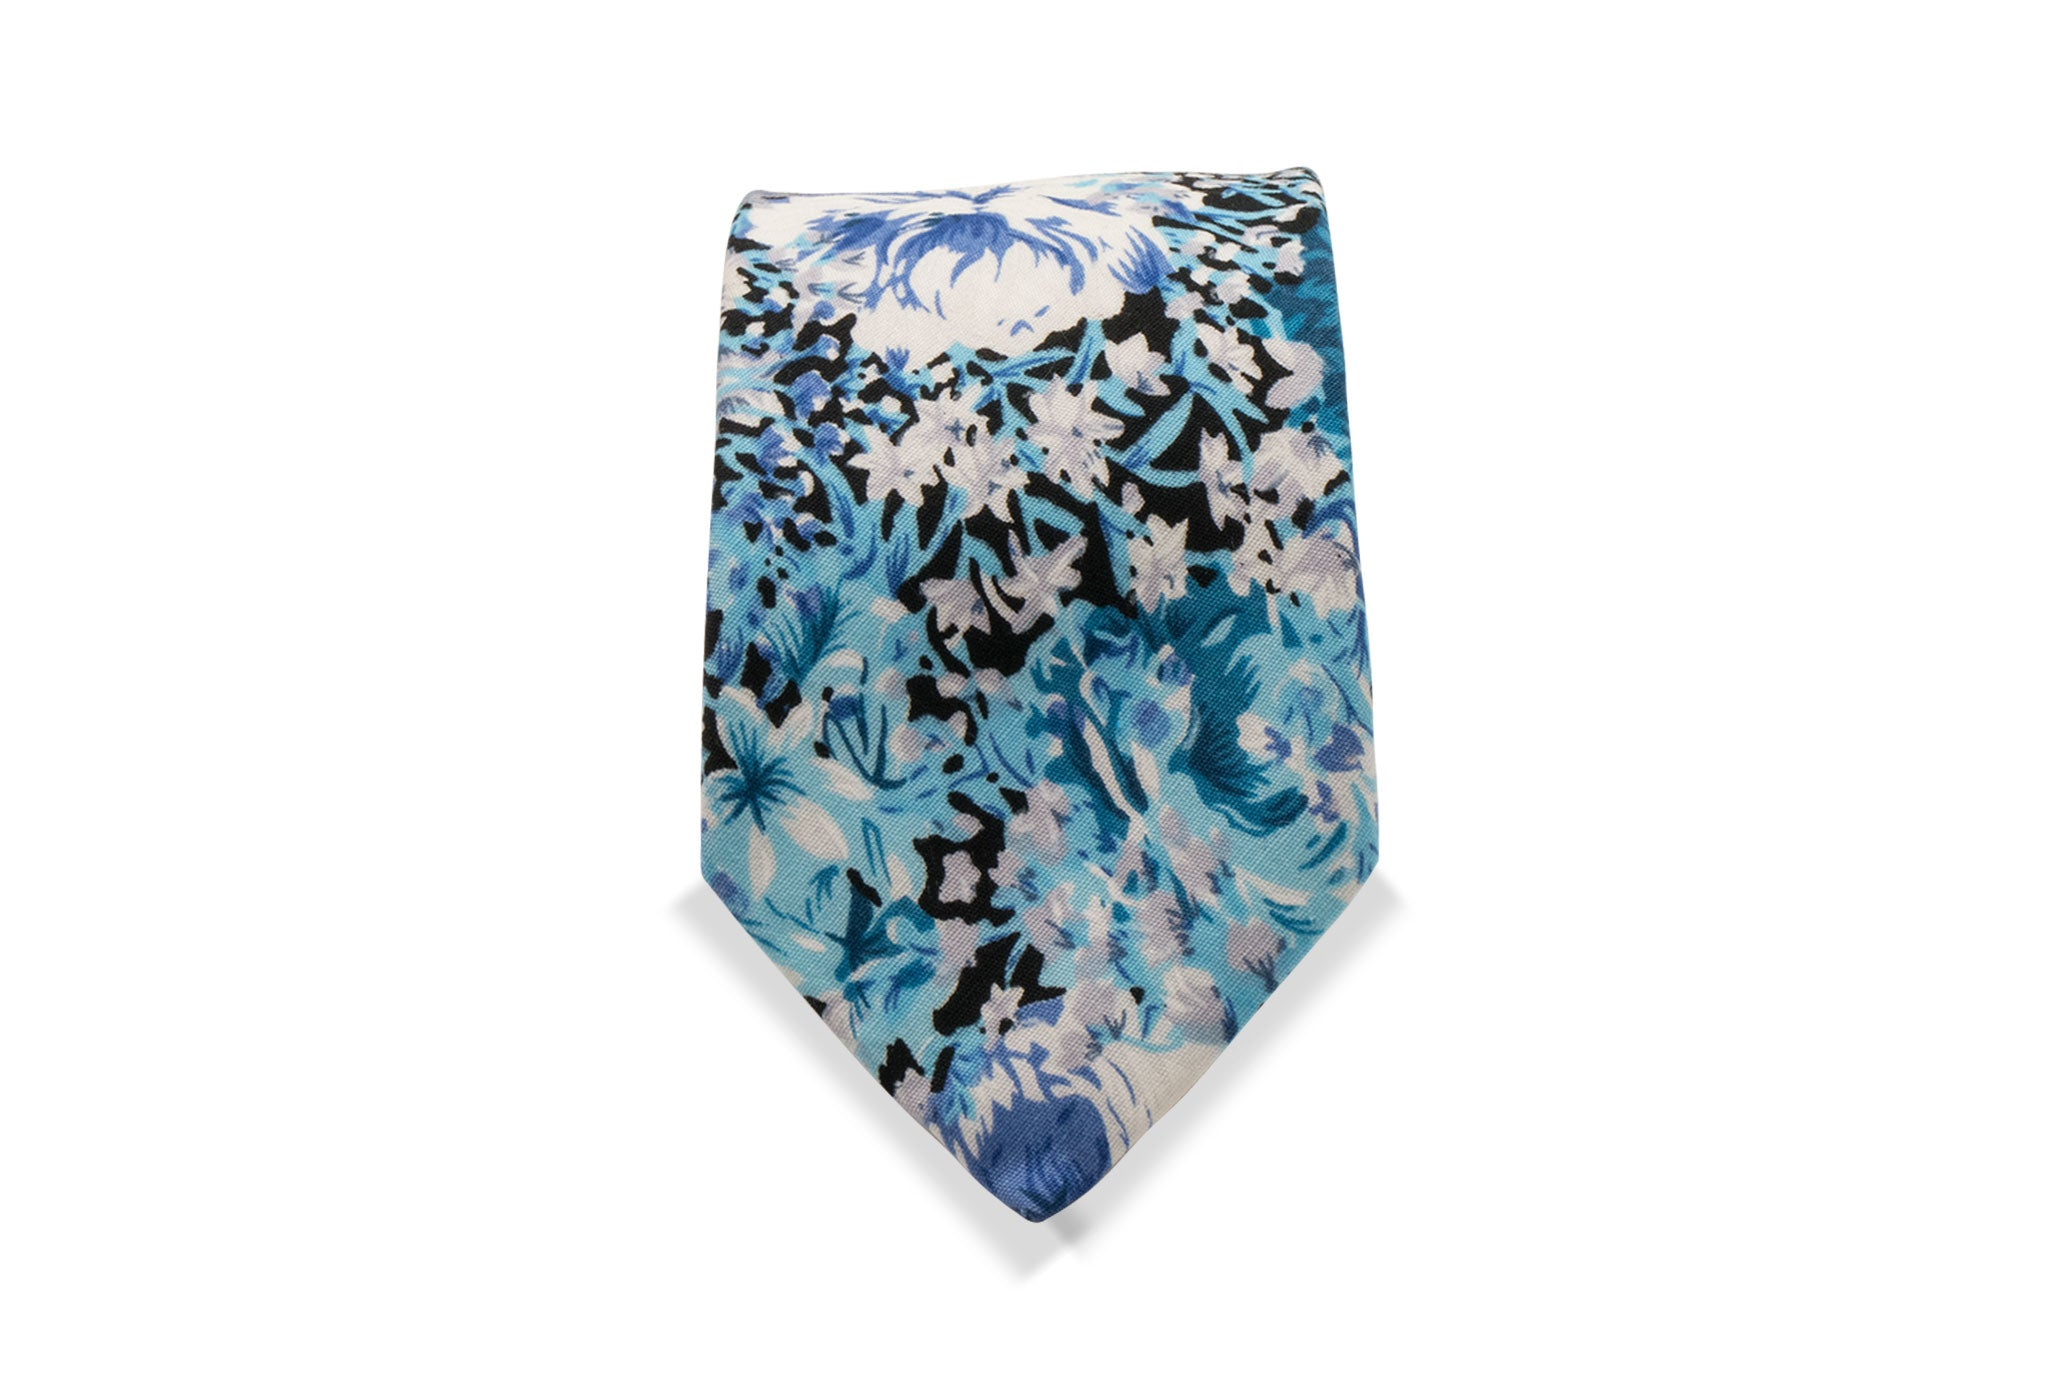 Tanohata Japanese Cotton Tie